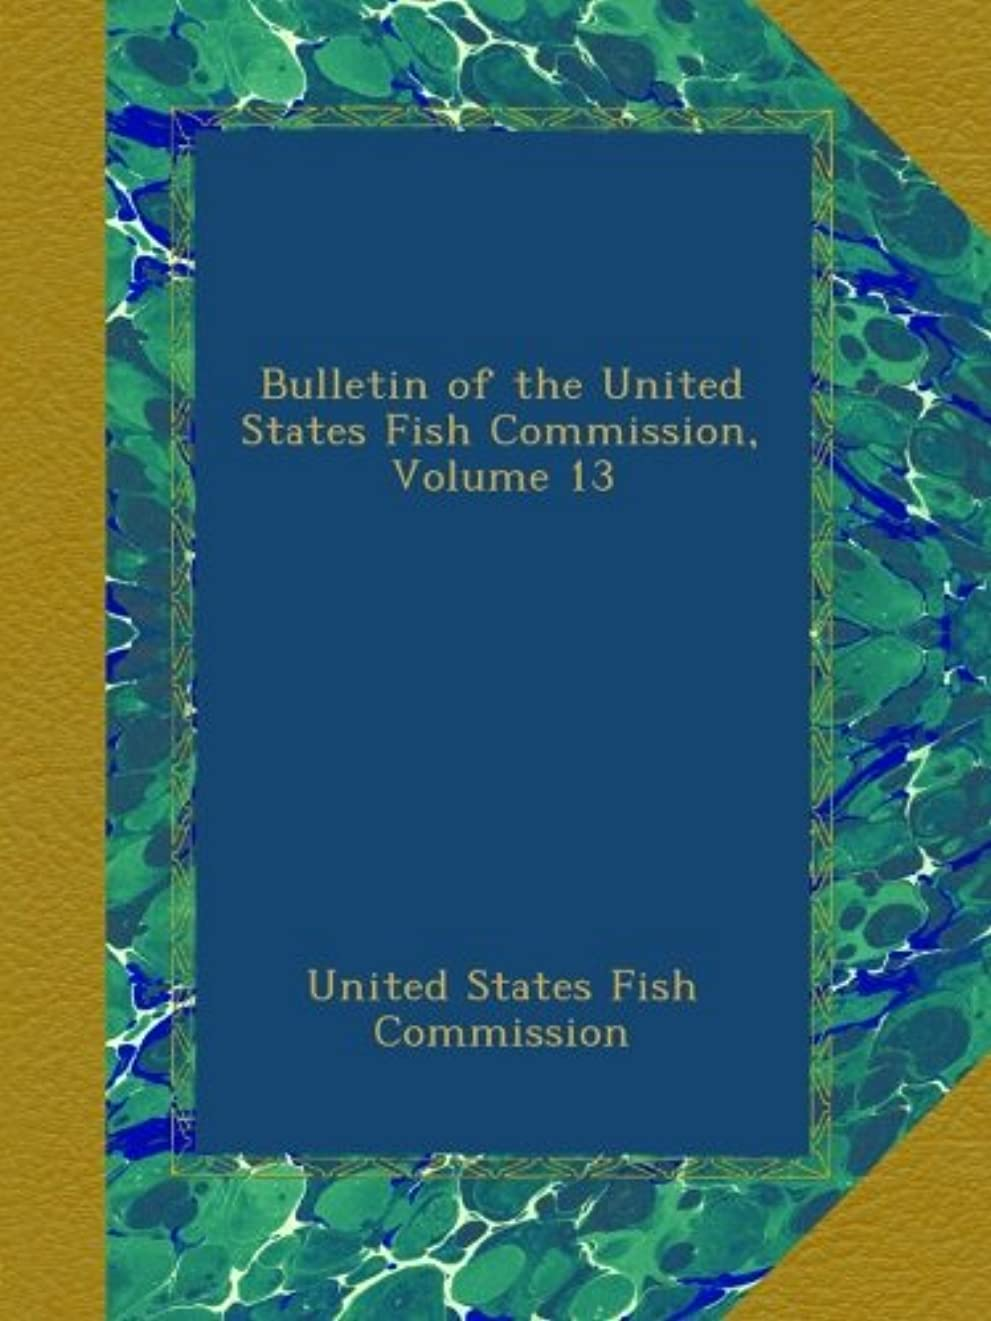 天才ジャーナル協会Bulletin of the United States Fish Commission, Volume 13